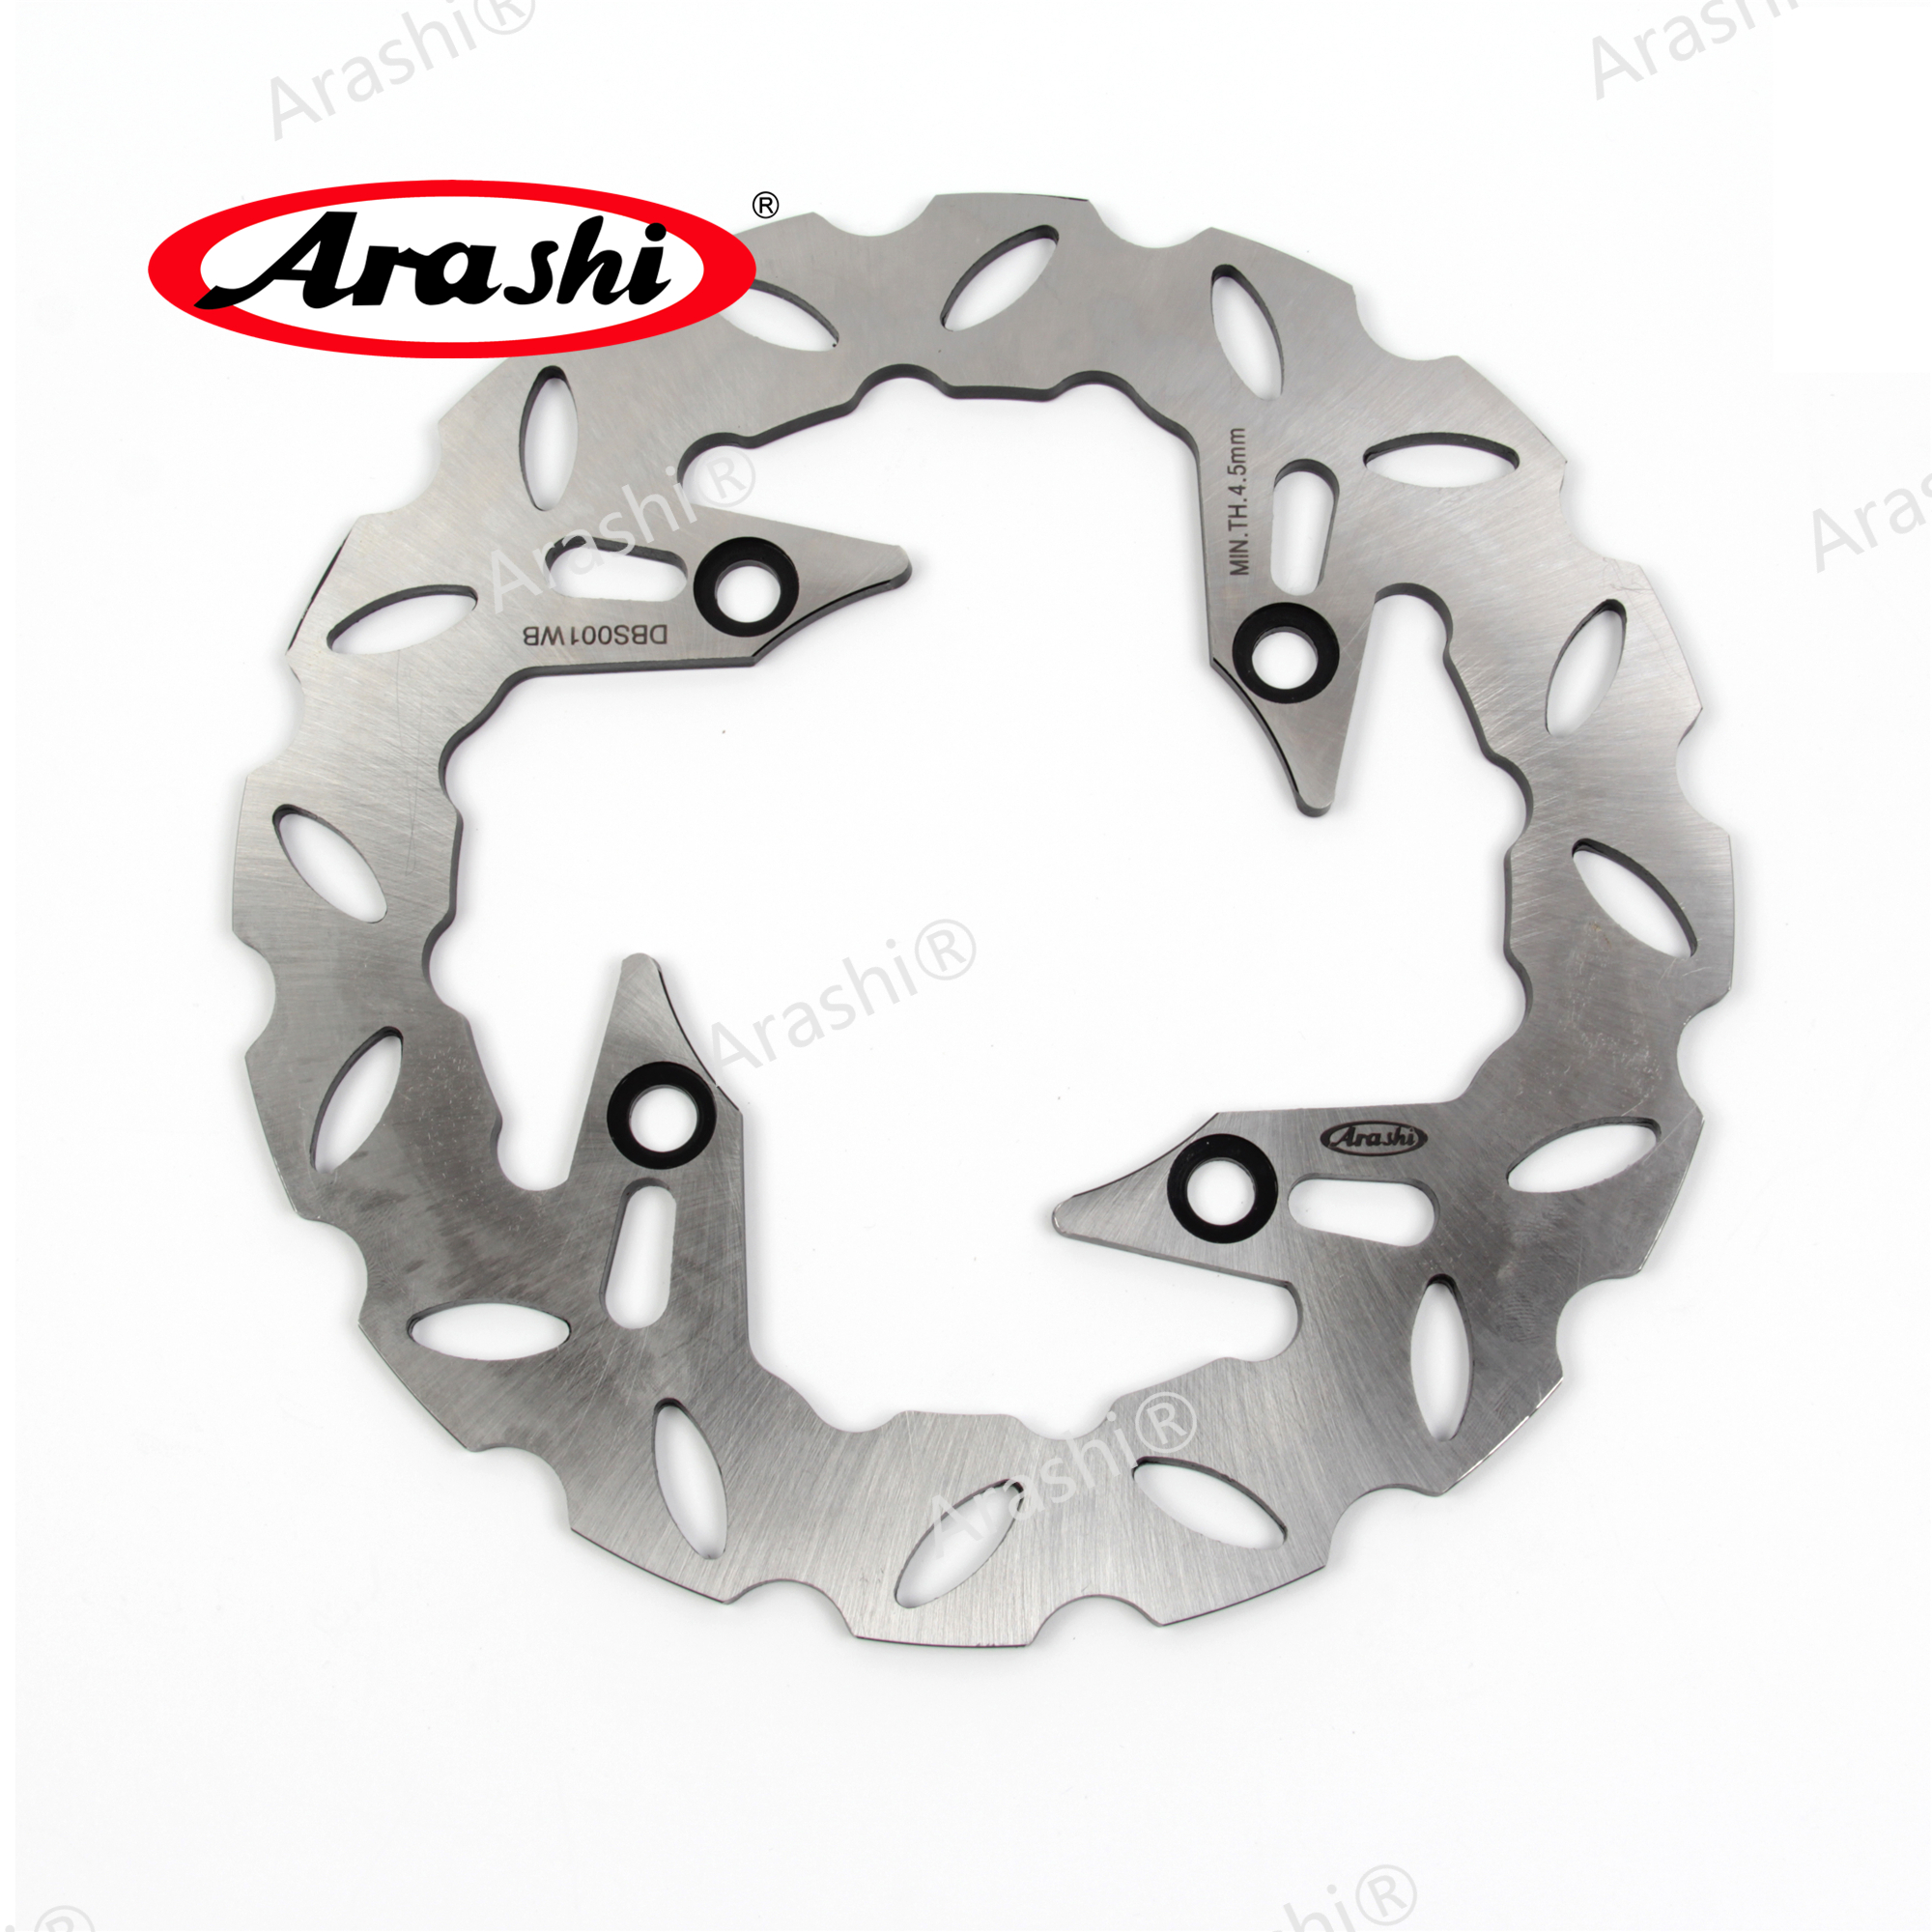 ARASHI For CAGIVA ELEFANT 750 1994-1995 Rear Brake Disc CNC Disks Rotors For <font><b>HONDA</b></font> <font><b>TRANSALP</b></font> <font><b>650</b></font> CB 250 400 500 <font><b>XL</b></font> V VTEC CB S image